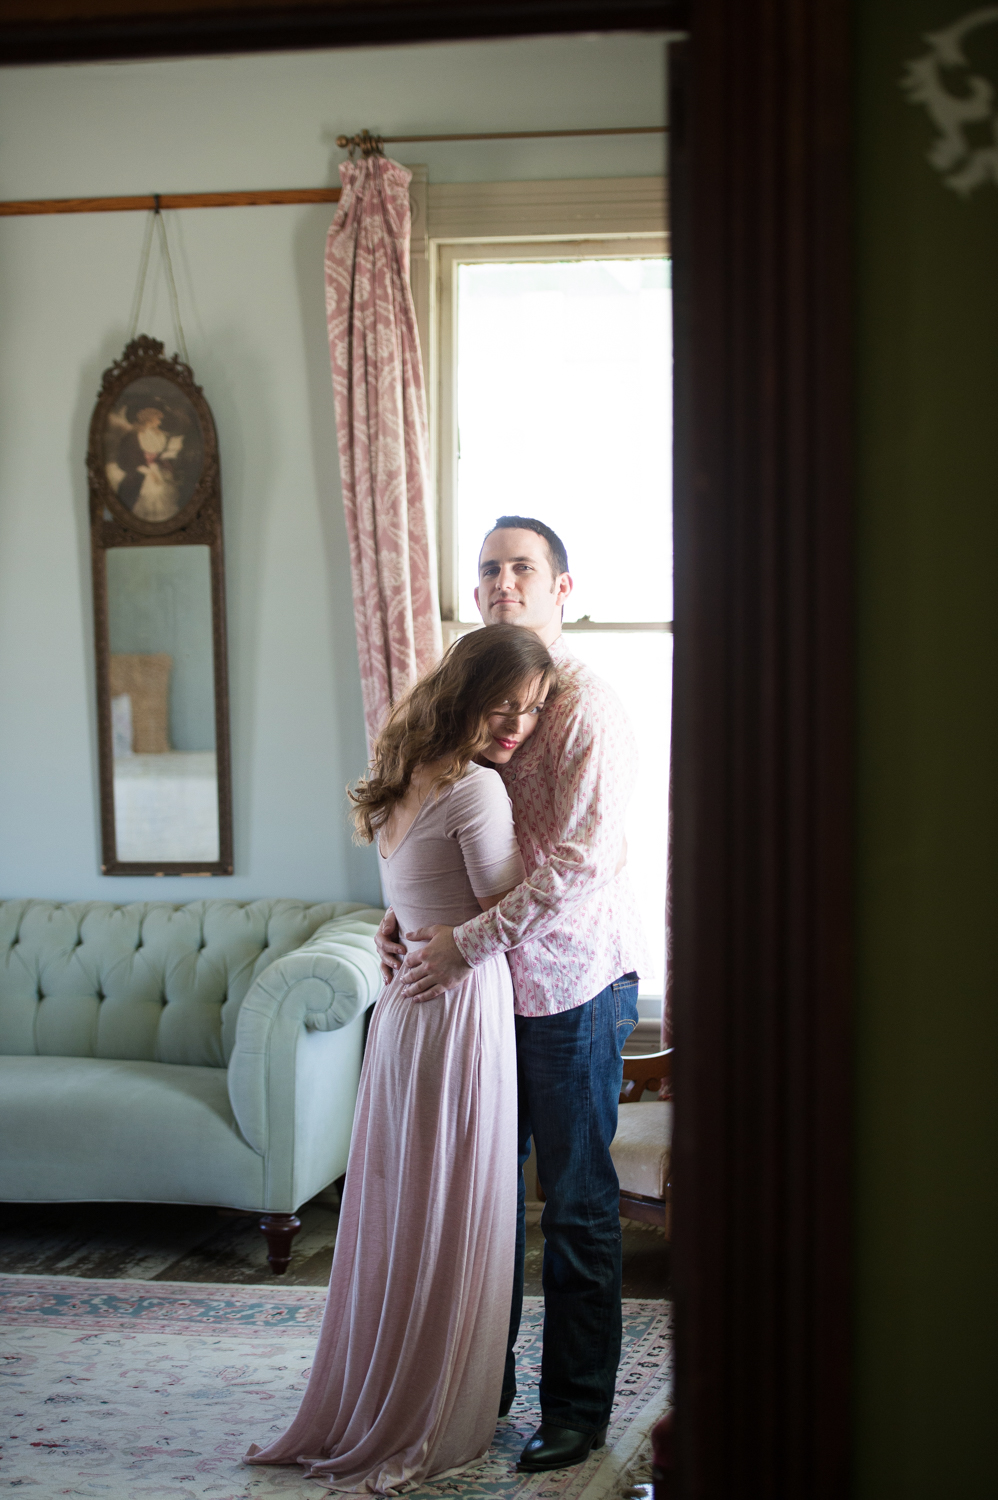 BARR_MANSION_ENGAGEMENT_SHOOT_BY_MATTHEW_MOORE_PHOTOGRAPHY_00074.jpg